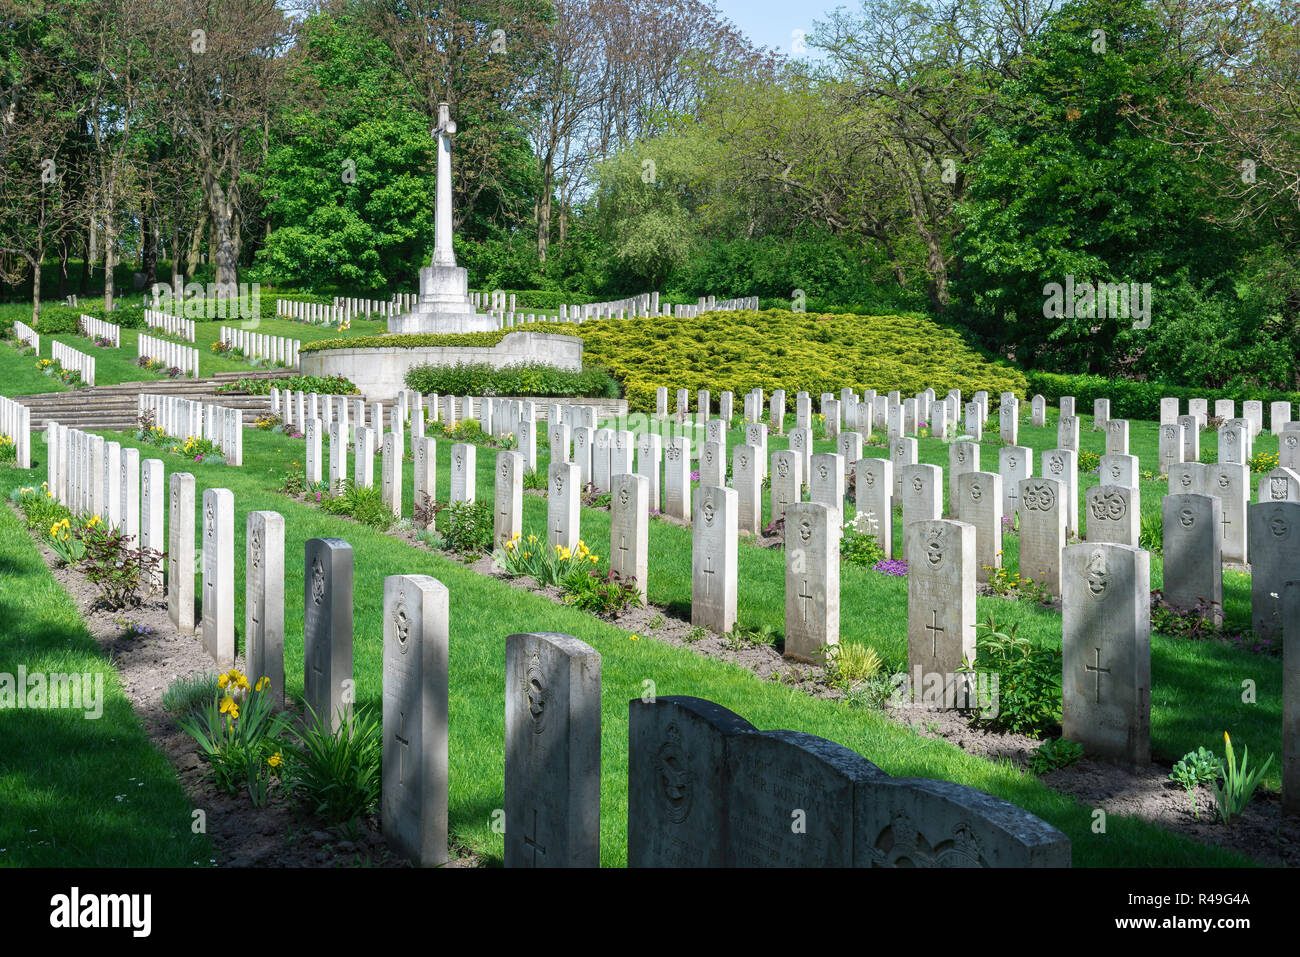 British war grave, view of headstones of British soldiers who fought in two world wars in the Garrison Cemetery in Poznan (Posen), Poland - Stock Image